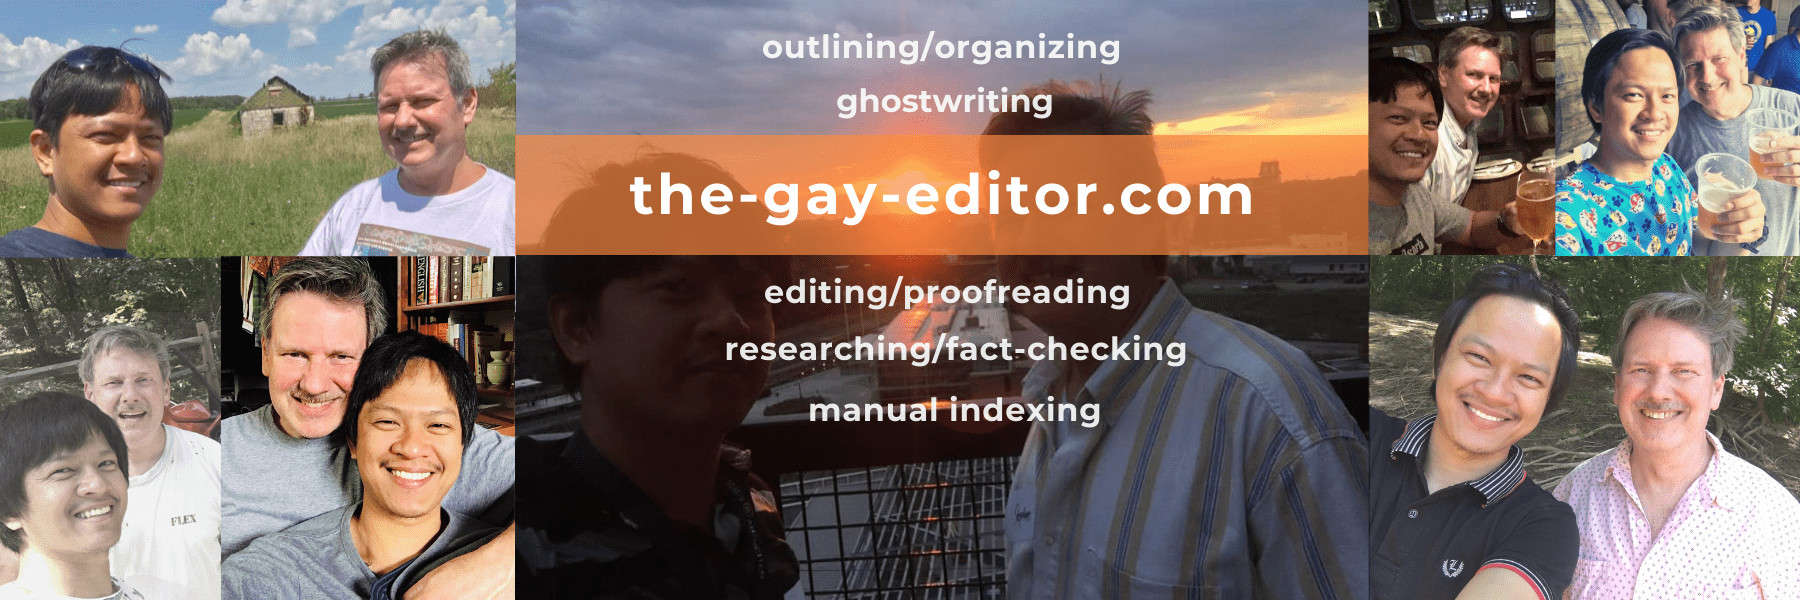 Thank you for visiting the-gay-editor, a division of the-freelance-editor, for help with outlining/organizing, ghostwriting, editing/proofreading, researching/fact-checking, and telling YOUR story.